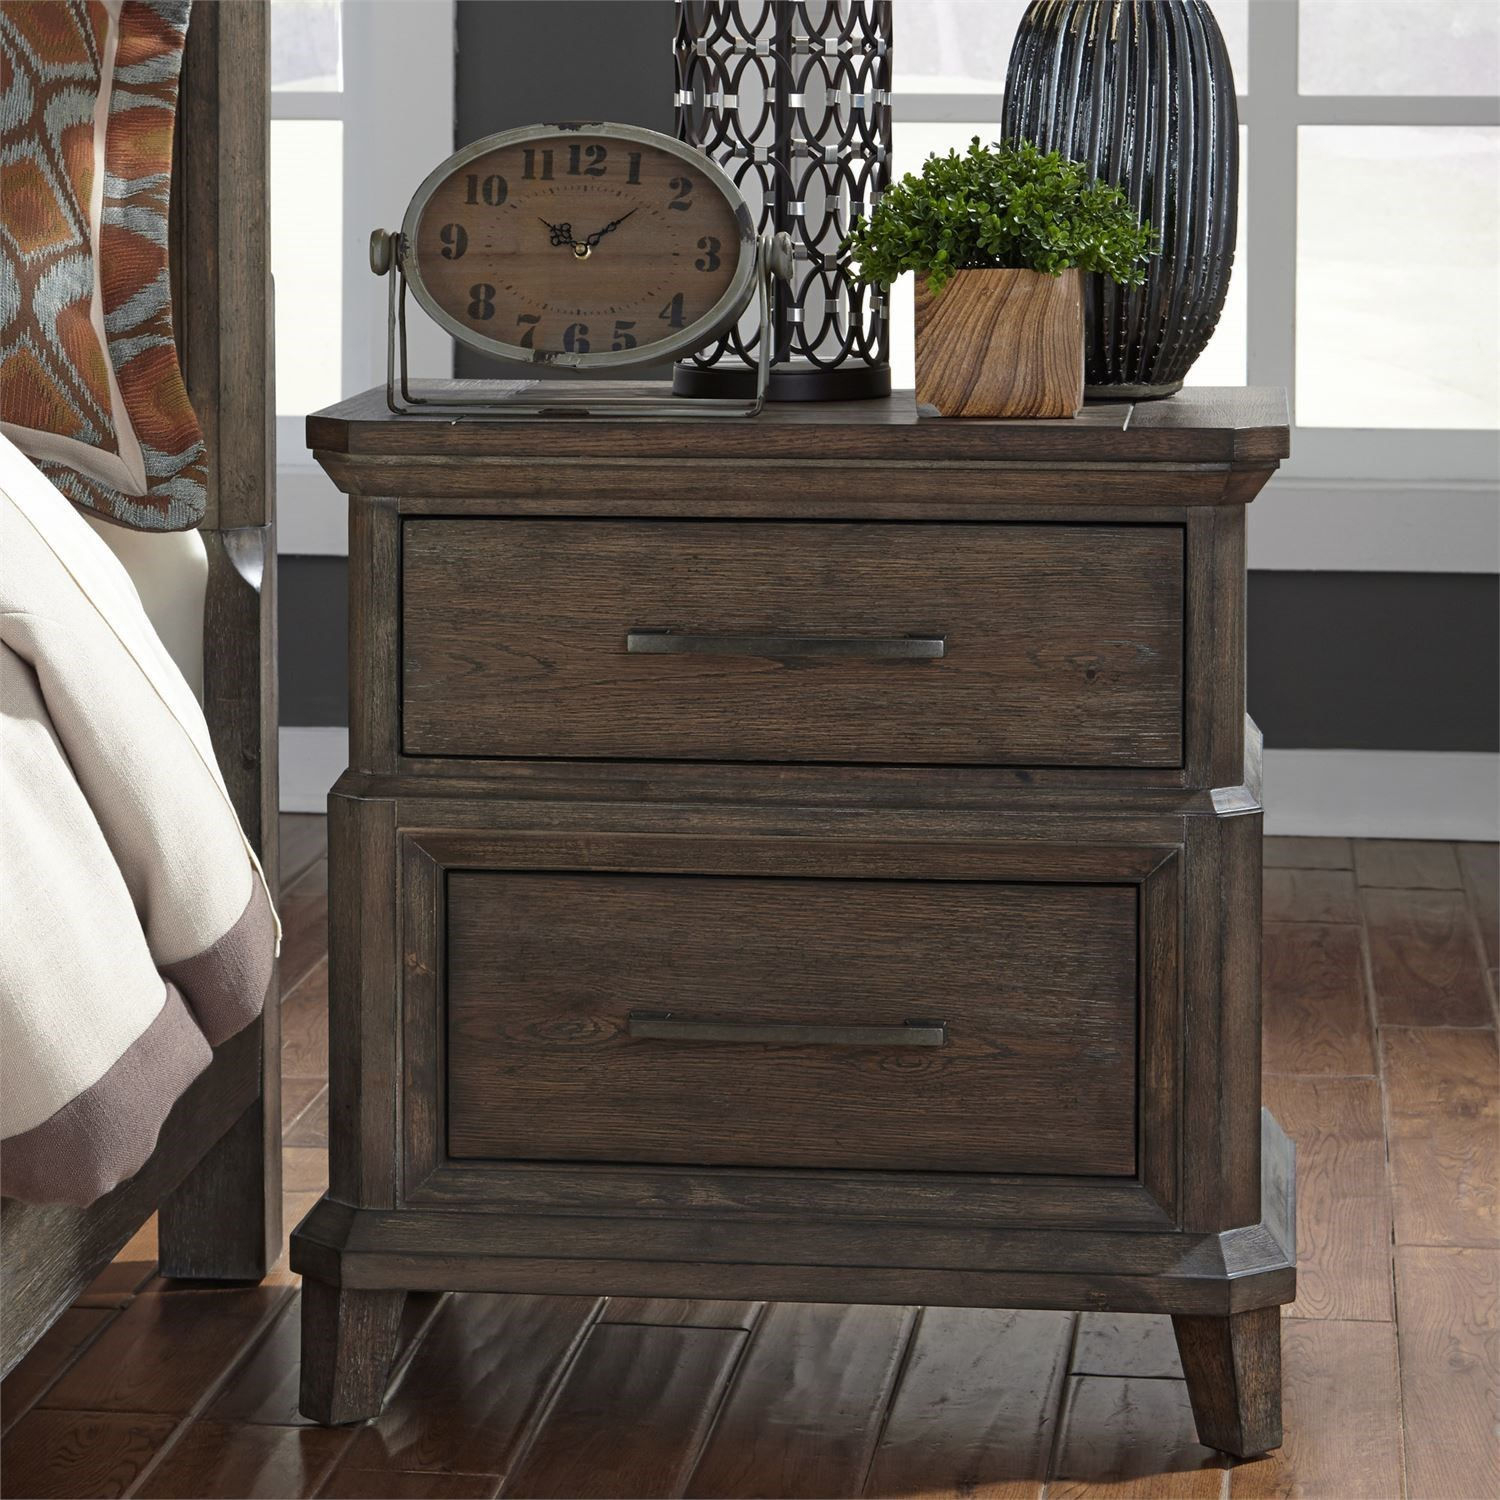 Artisan Prairie 2 Drawer Nightstand by Liberty Furniture at Zak's Home